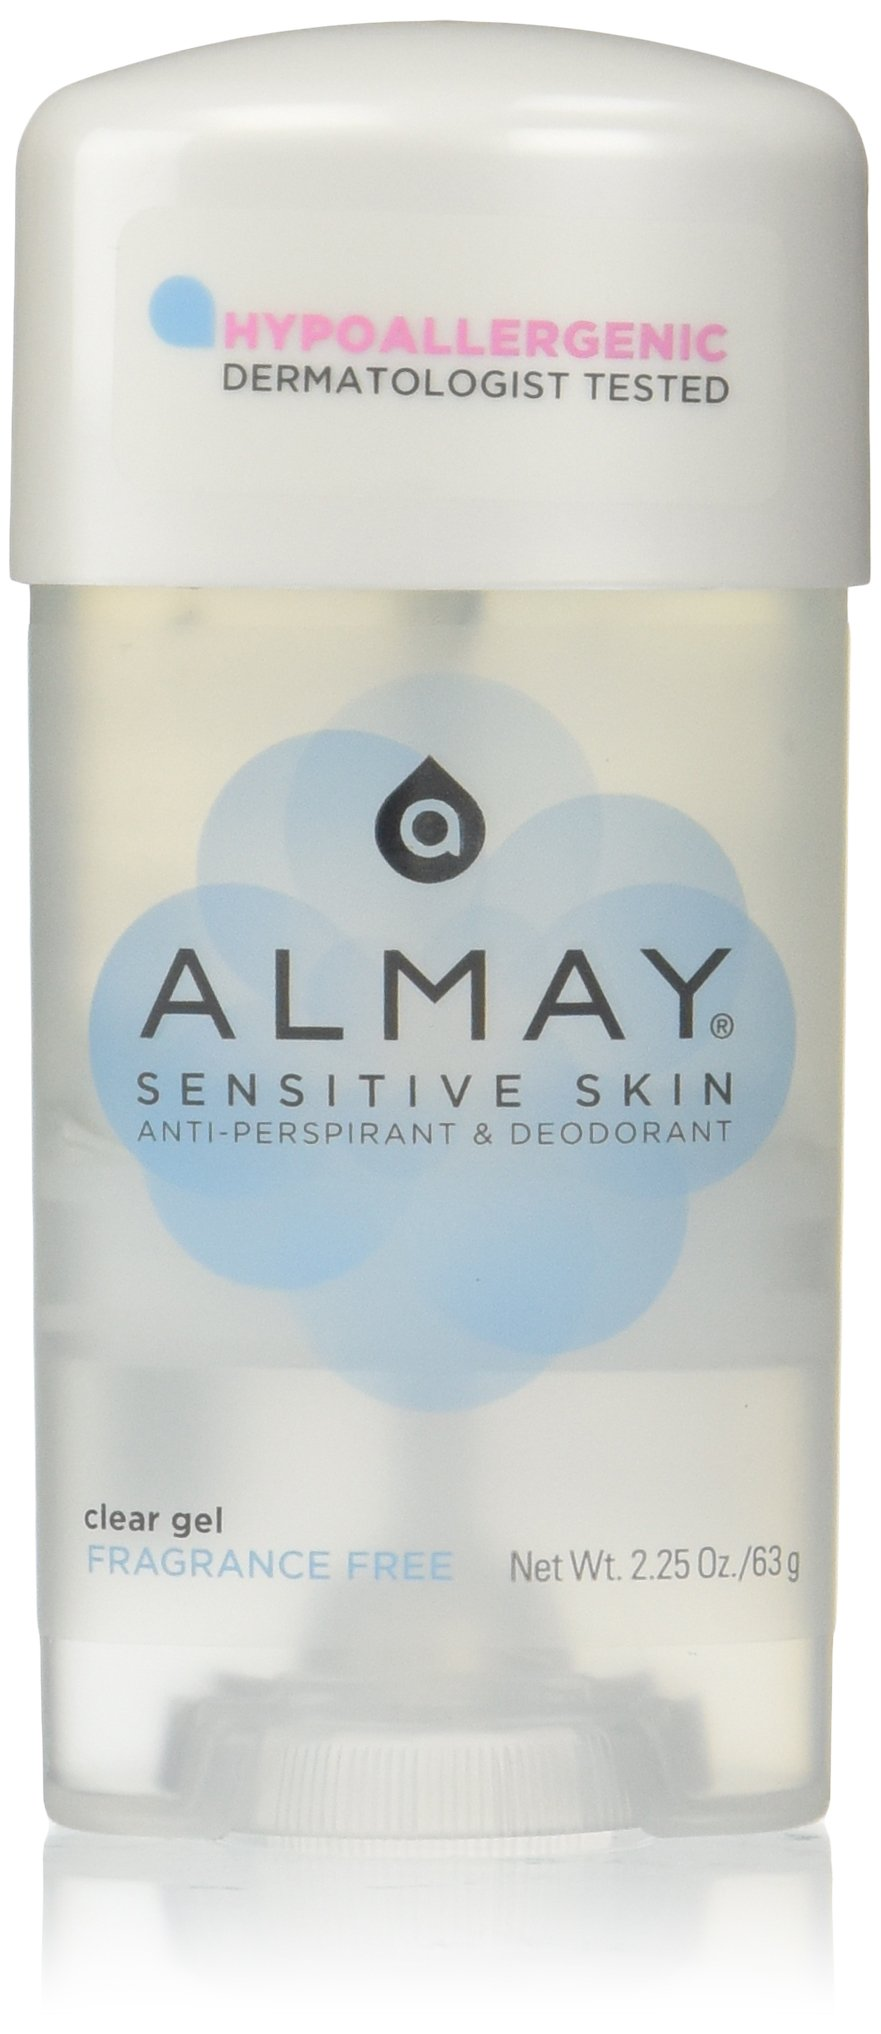 Almay Sensitive skin Clear Gel, Anti-Perspirant & Deodorant, Fragrance Free, 2.25-Ounce Stick (Pack of 6)